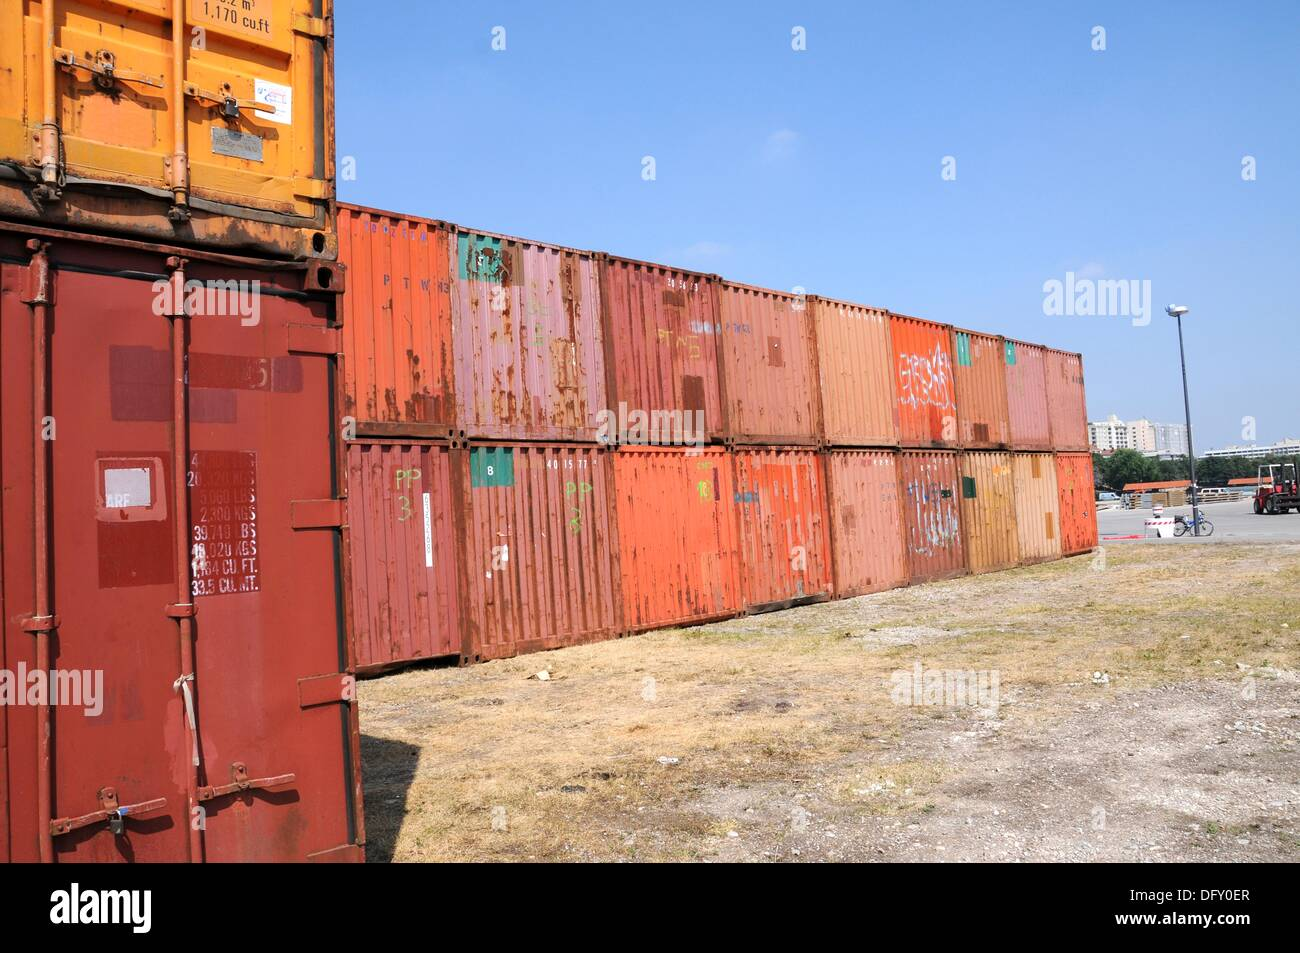 Colorful Container Transport in Munich - Stock Image